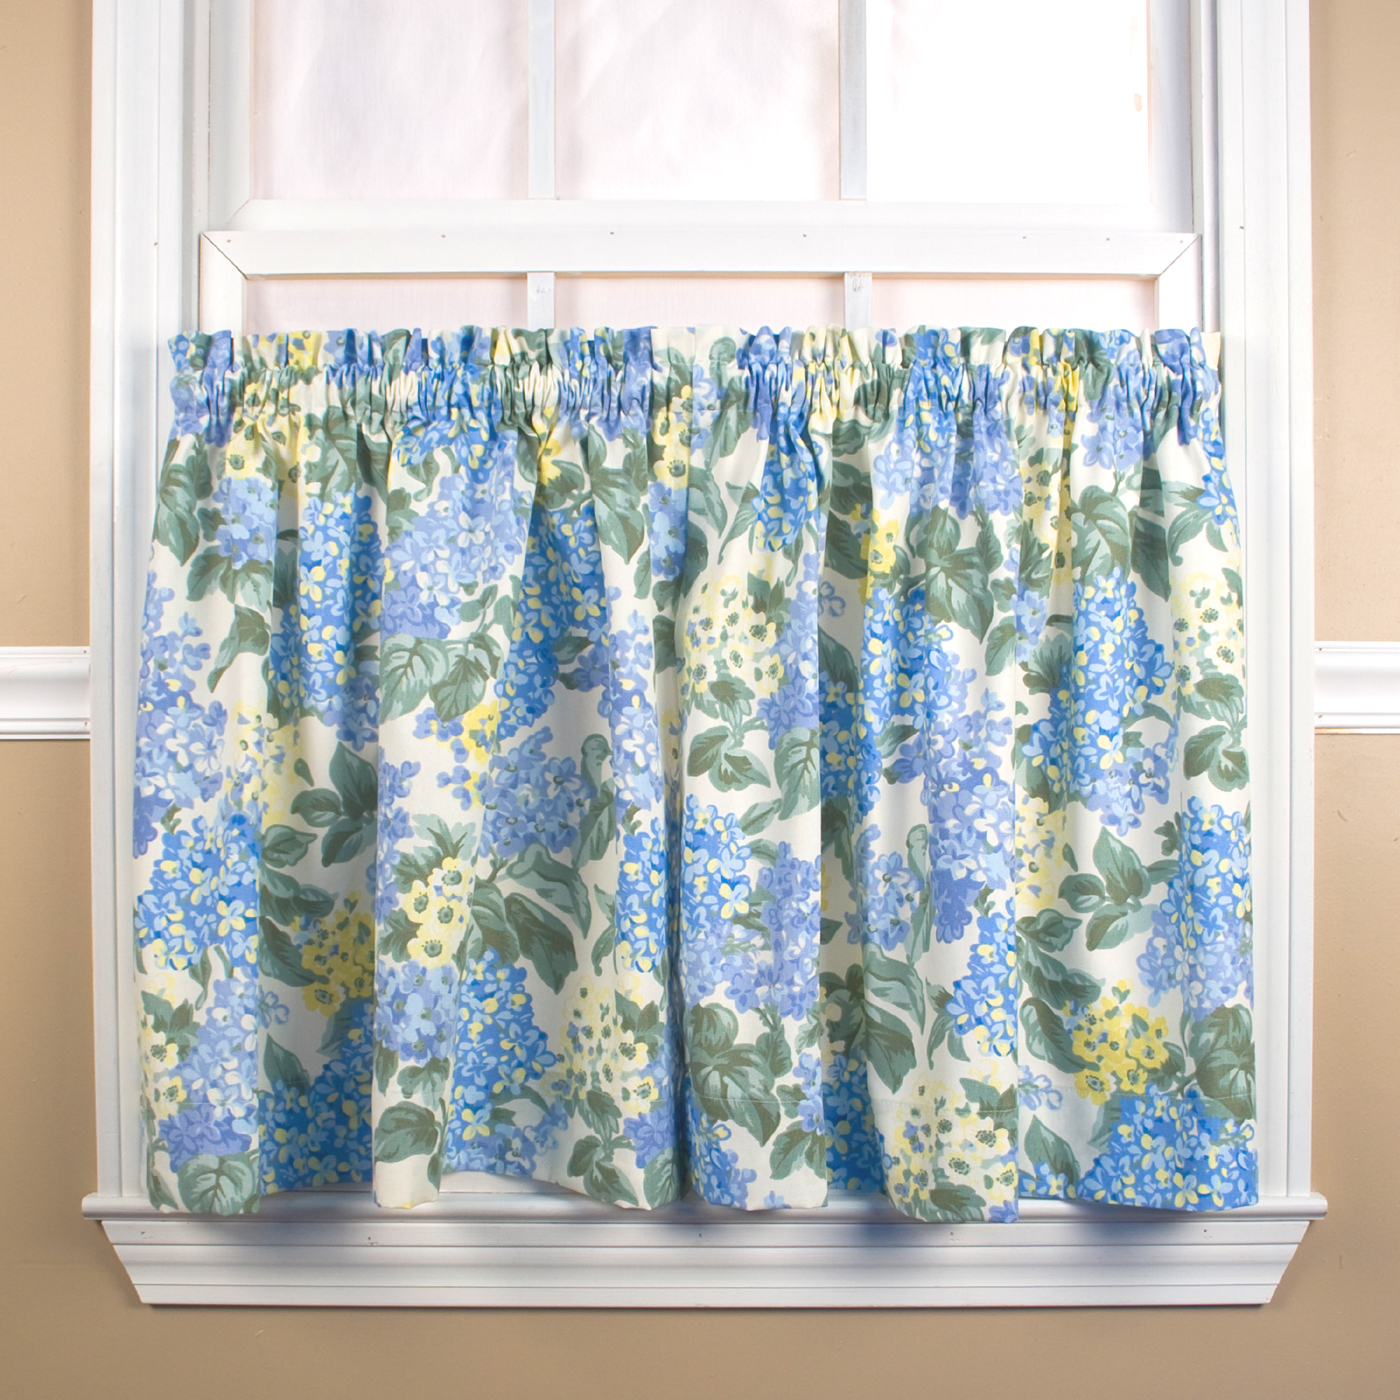 Designer Kitchen Curtains - TheCurtainShop.com